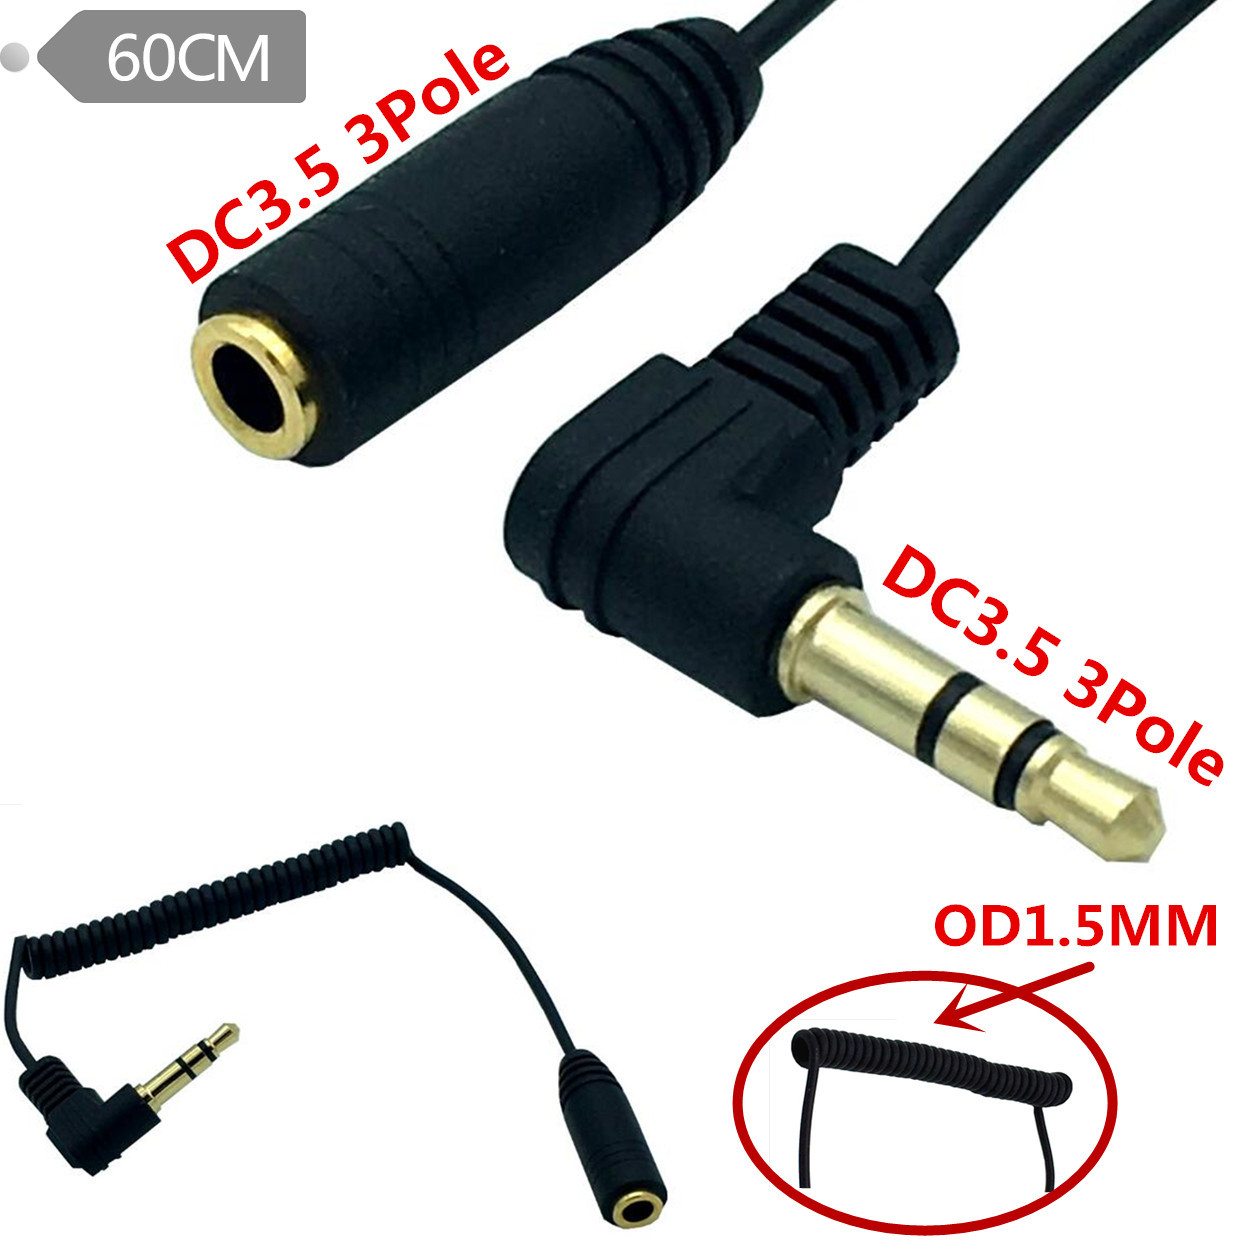 Detail Feedback Questions About P555 635 Wiring Male Microphone Pinout Diagram Aliexpresscom Buy 15cm Usb Rs232 To Db9 Serial Ultra Fine Wire Corner Spring Audio Earphone